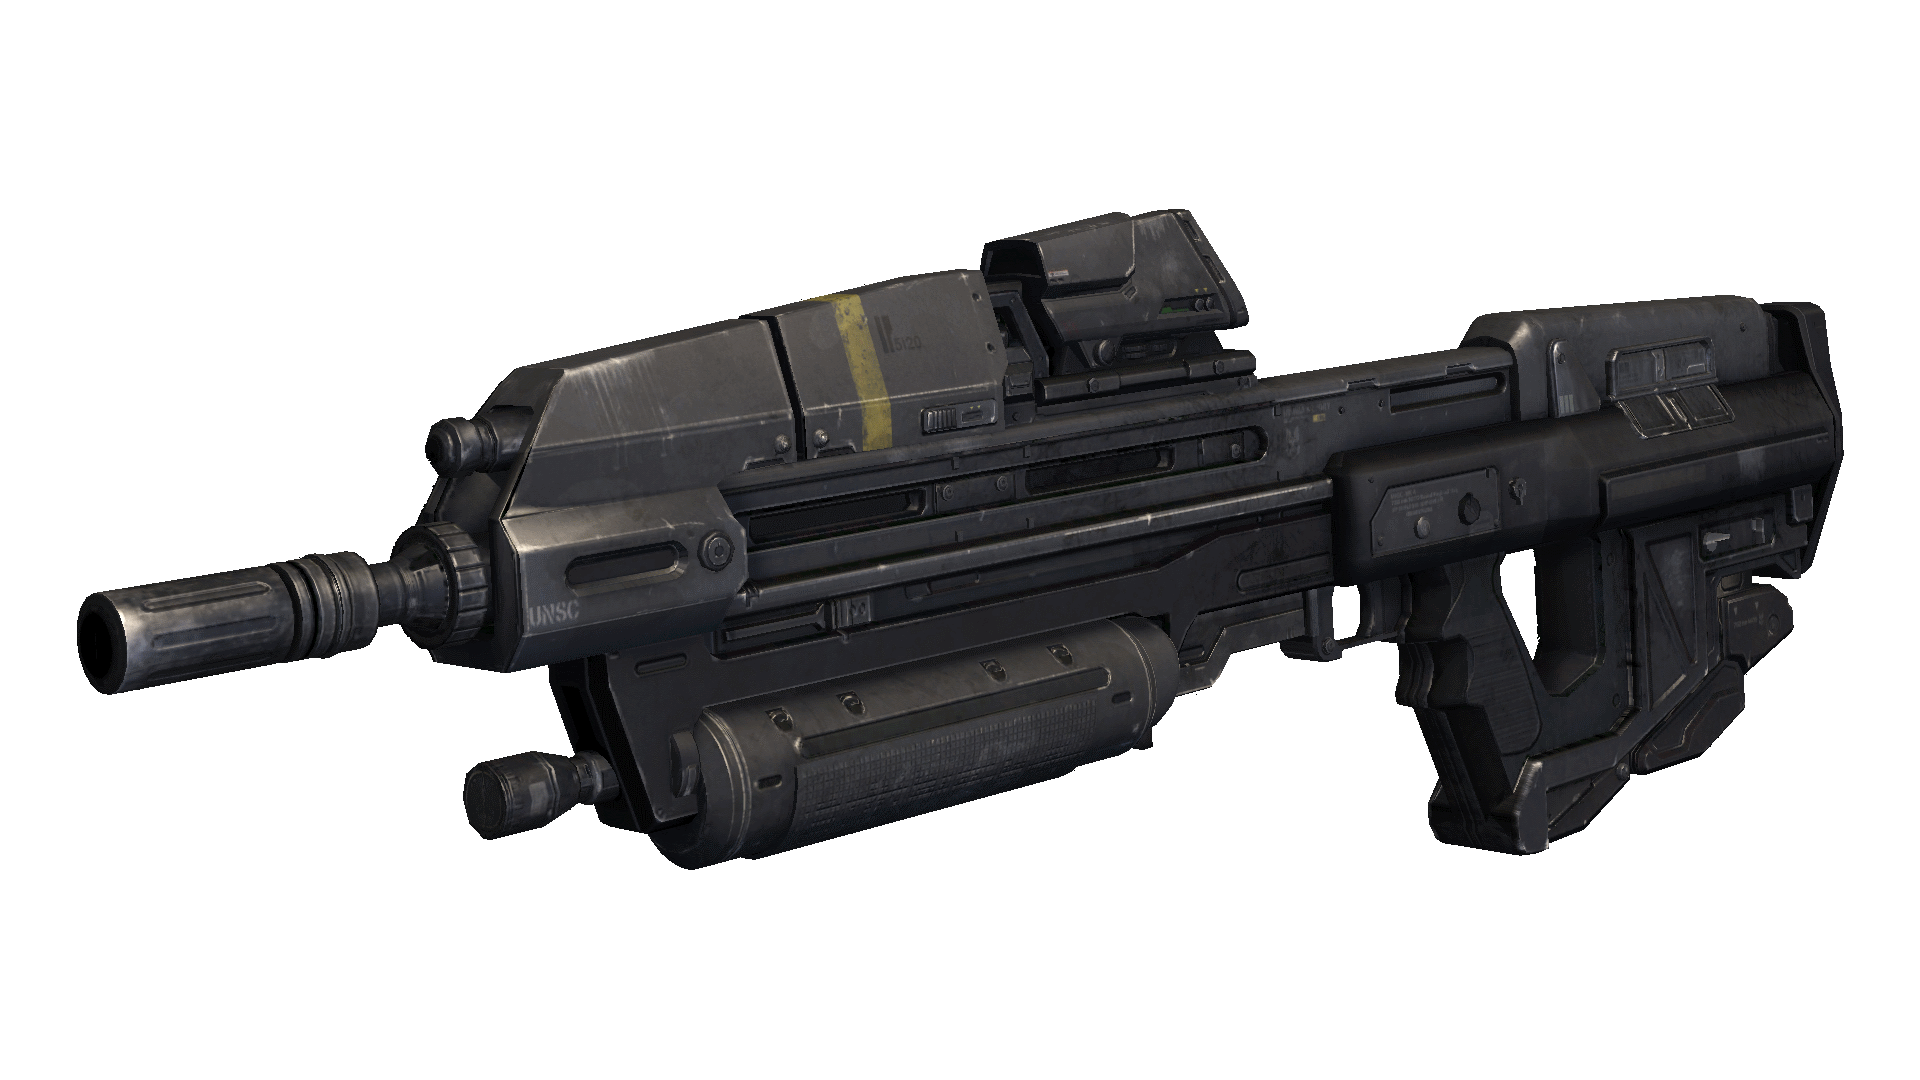 File:MA37 Assault Rifle.png - The Call of Duty Wiki - Modern ...